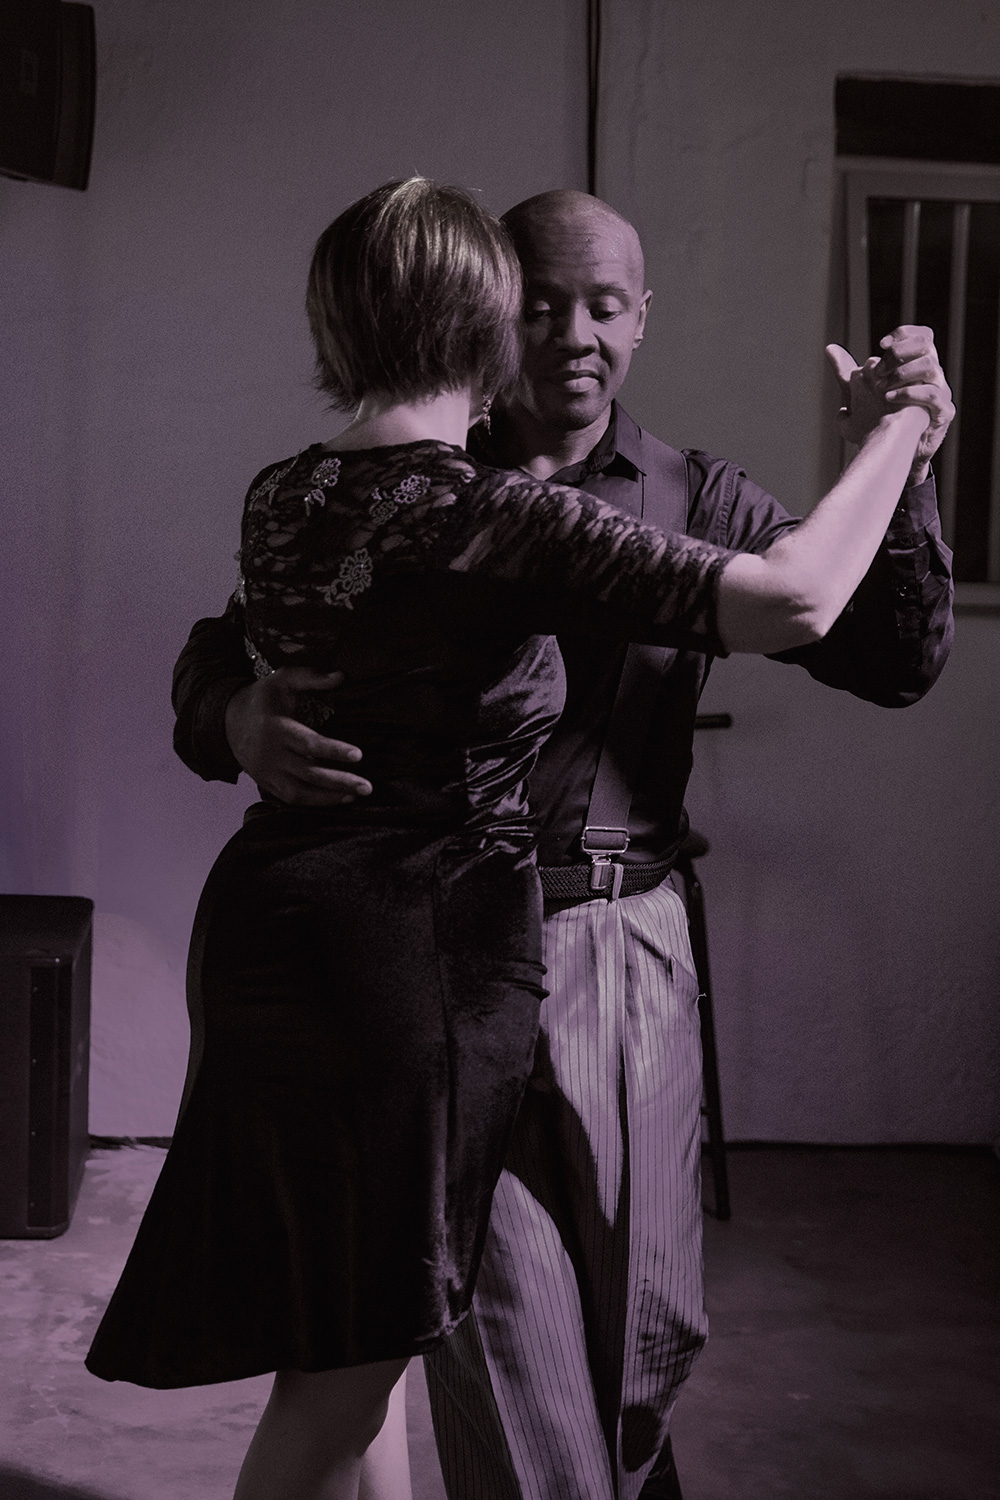 Photographing a tango band